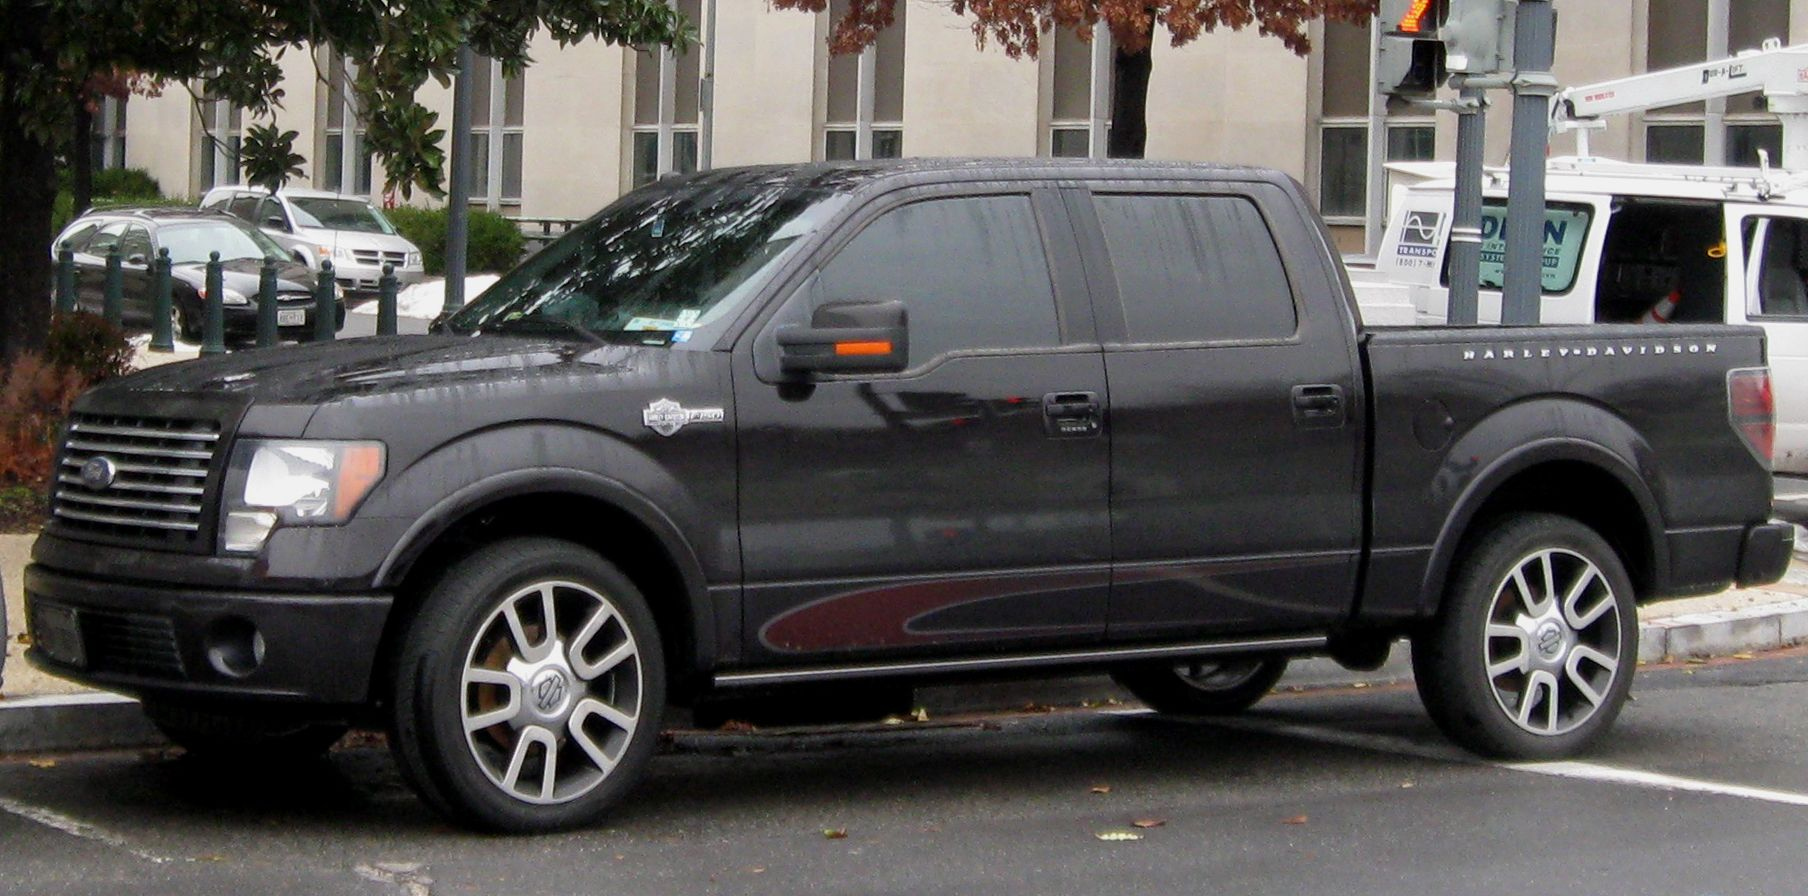 2010 ford f 150 harley davidson ford 2010 f 150 owners manual pdf 2010 ford f 150 harley davidson ford 2010 f 150 owners manual publicscrutiny Choice Image